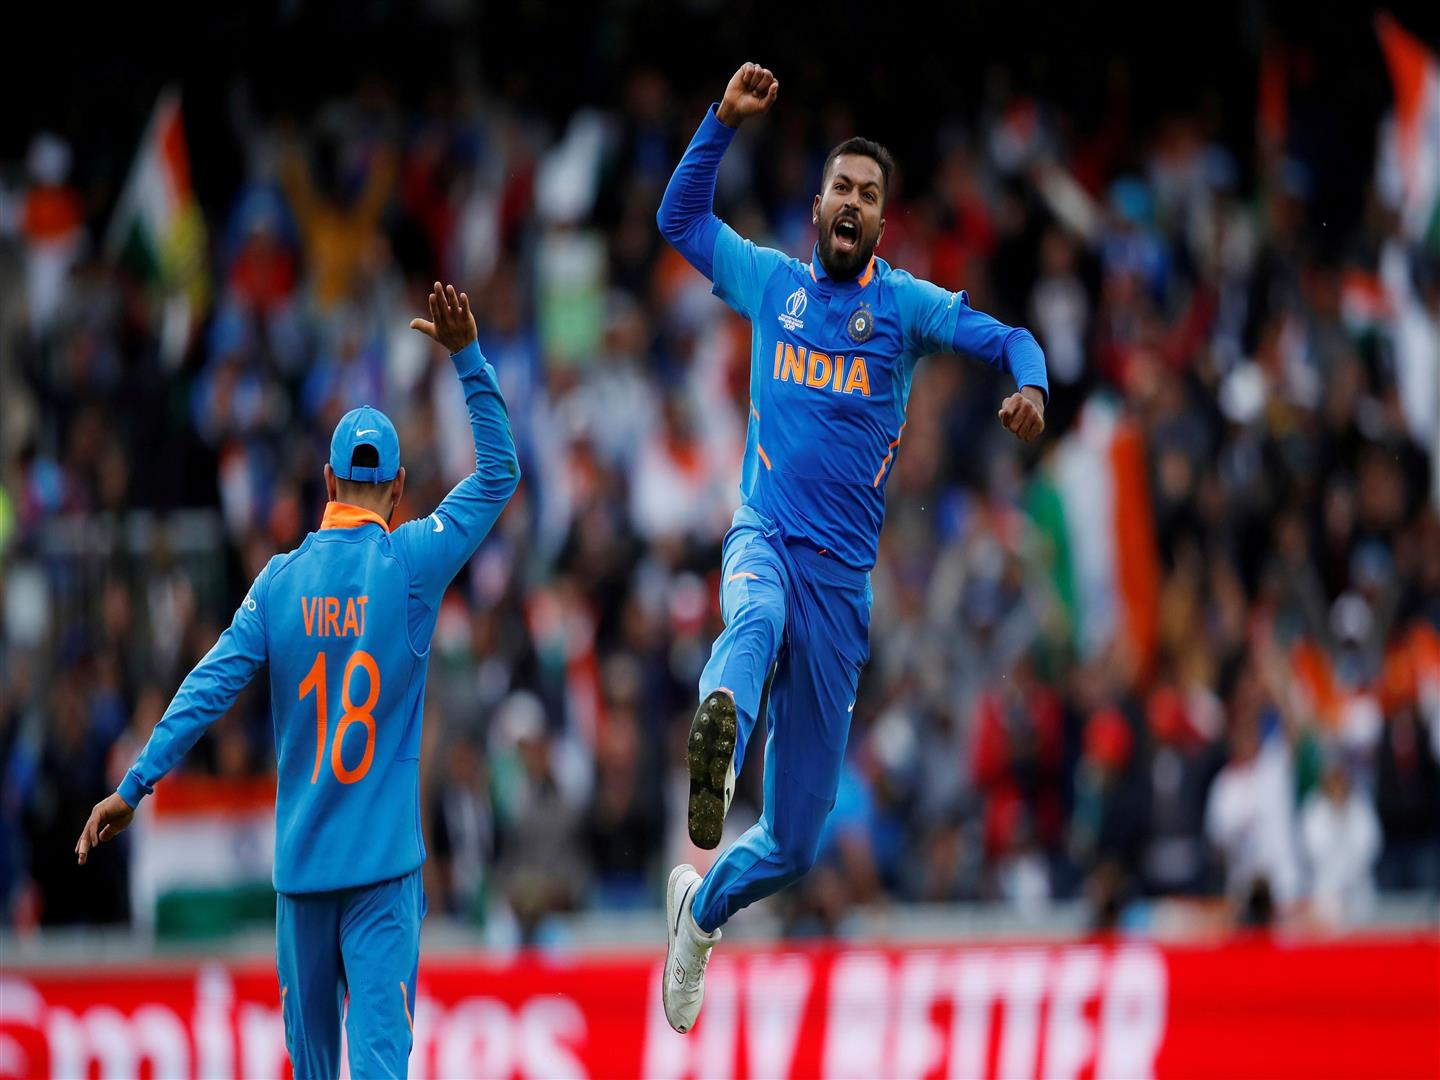 1440x1080 Hardik Pandya Indian Cricketer in World Cup 2019 5K Wallpaper